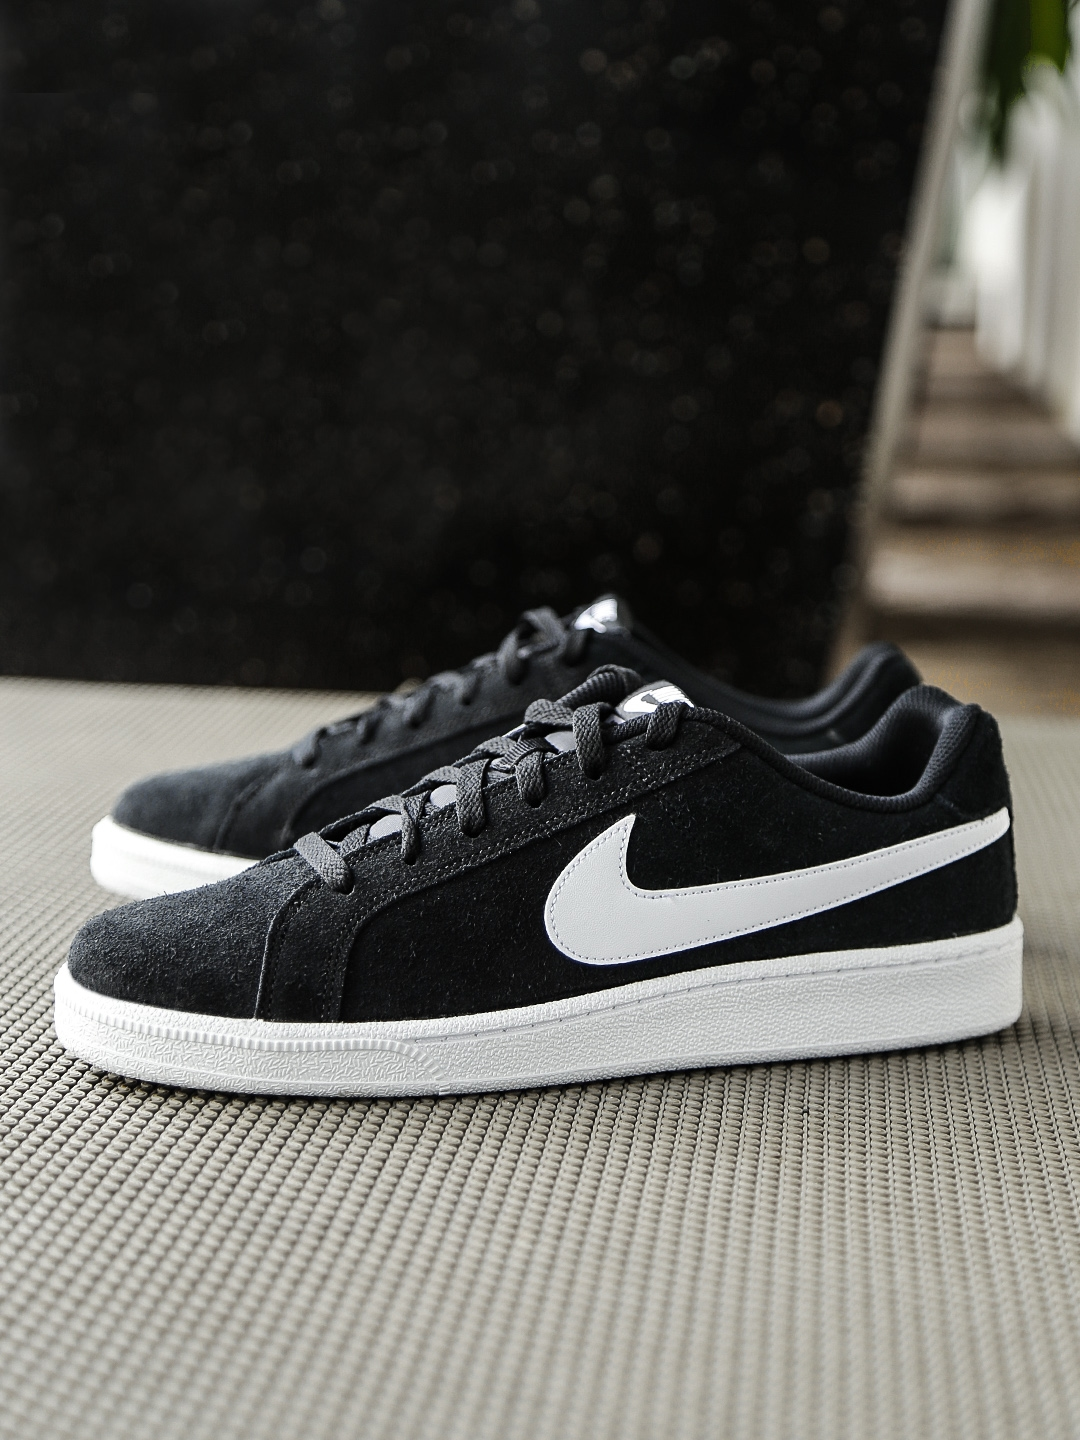 detailed look 6d792 6e2da Nike Men Black COURT ROYALE Suede Sneakers